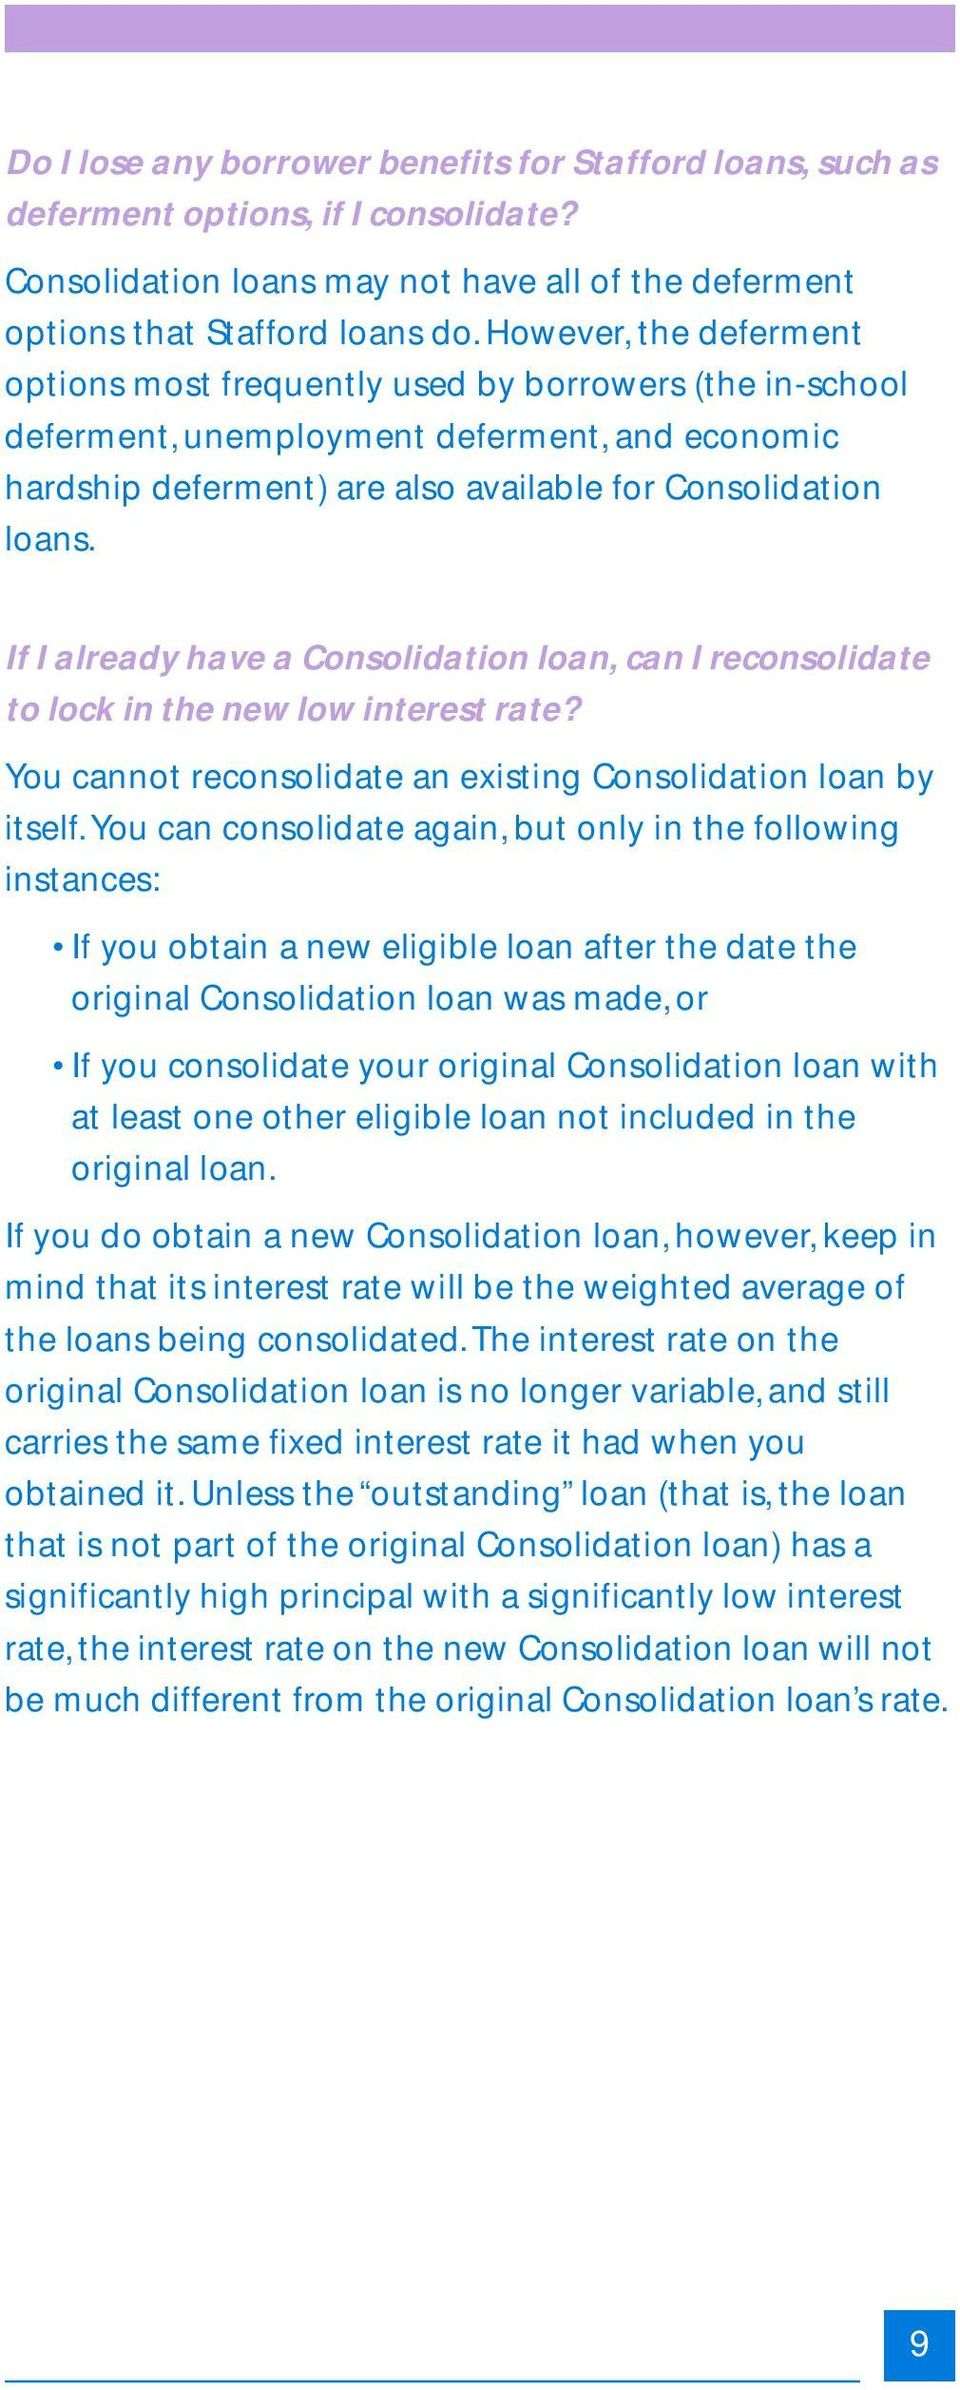 If I already have a Consolidation loan, can I reconsolidate to lock in the new low interest rate? You cannot reconsolidate an existing Consolidation loan by itself.